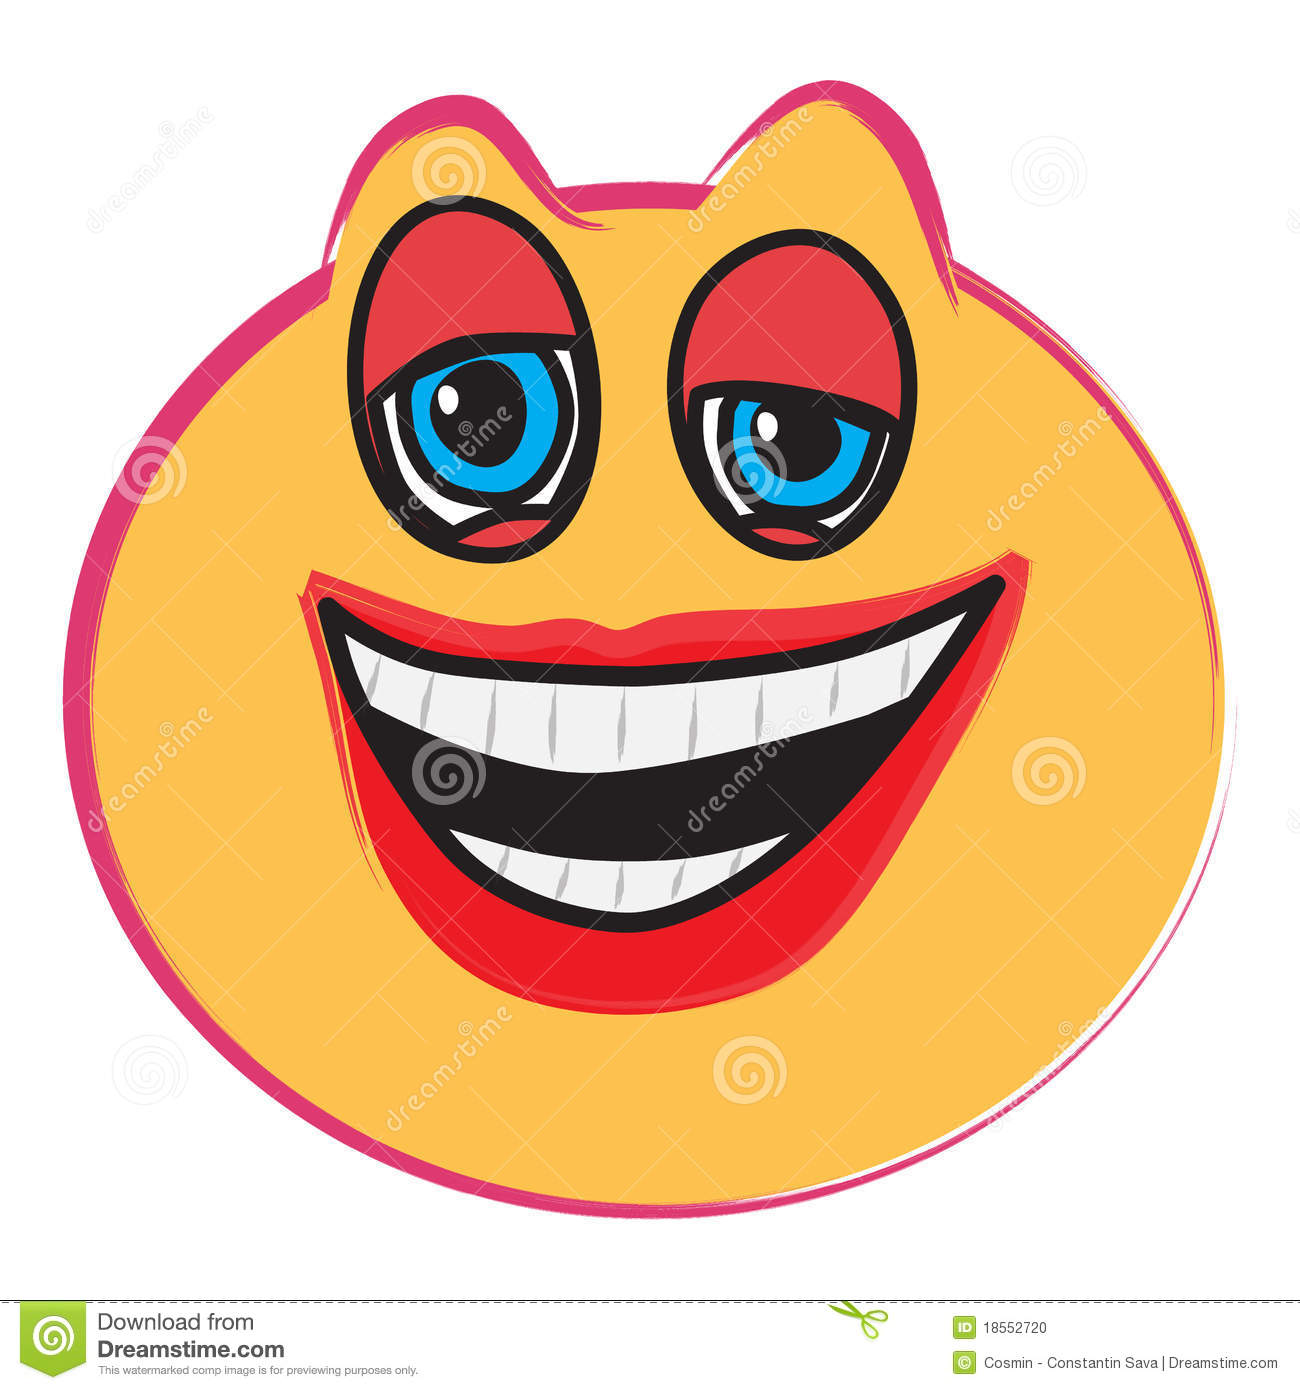 Laughing Face Stock Photo - Image: 18552720 Baby Girl Crying Animation